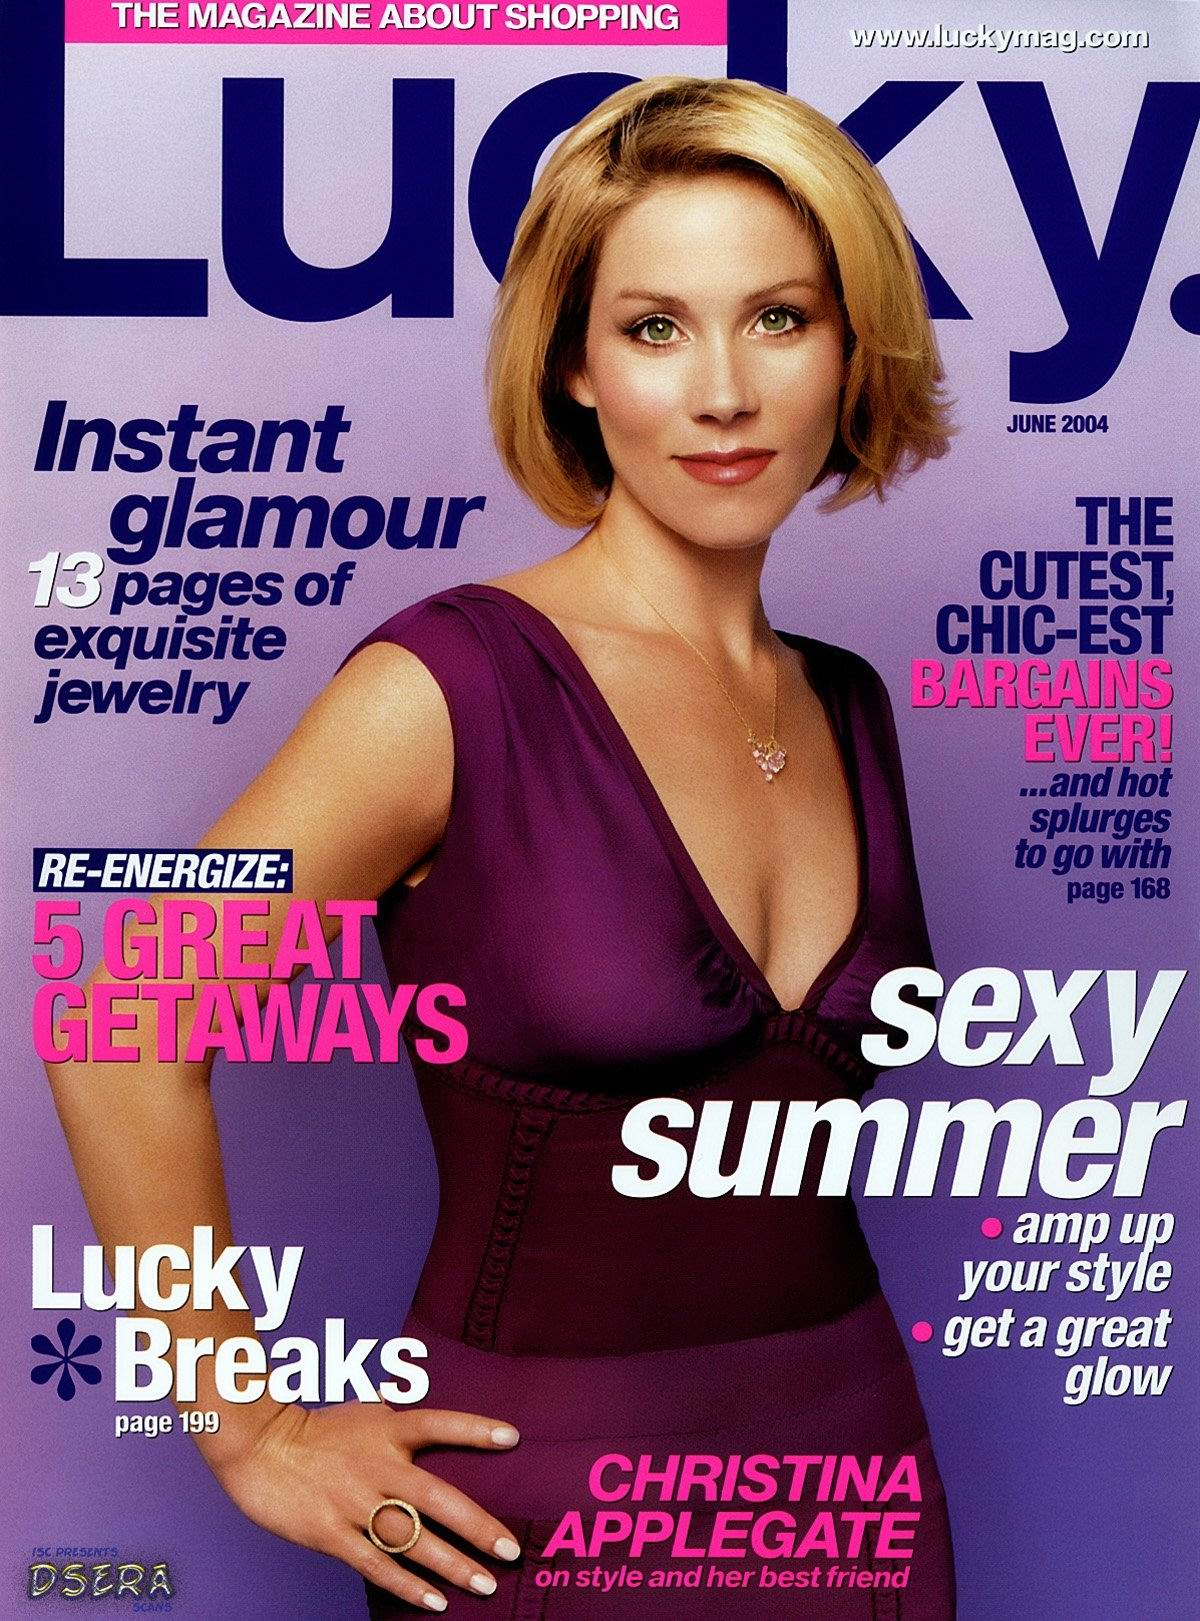 Van webcam christina applegate nude pics magazine resolution pictures